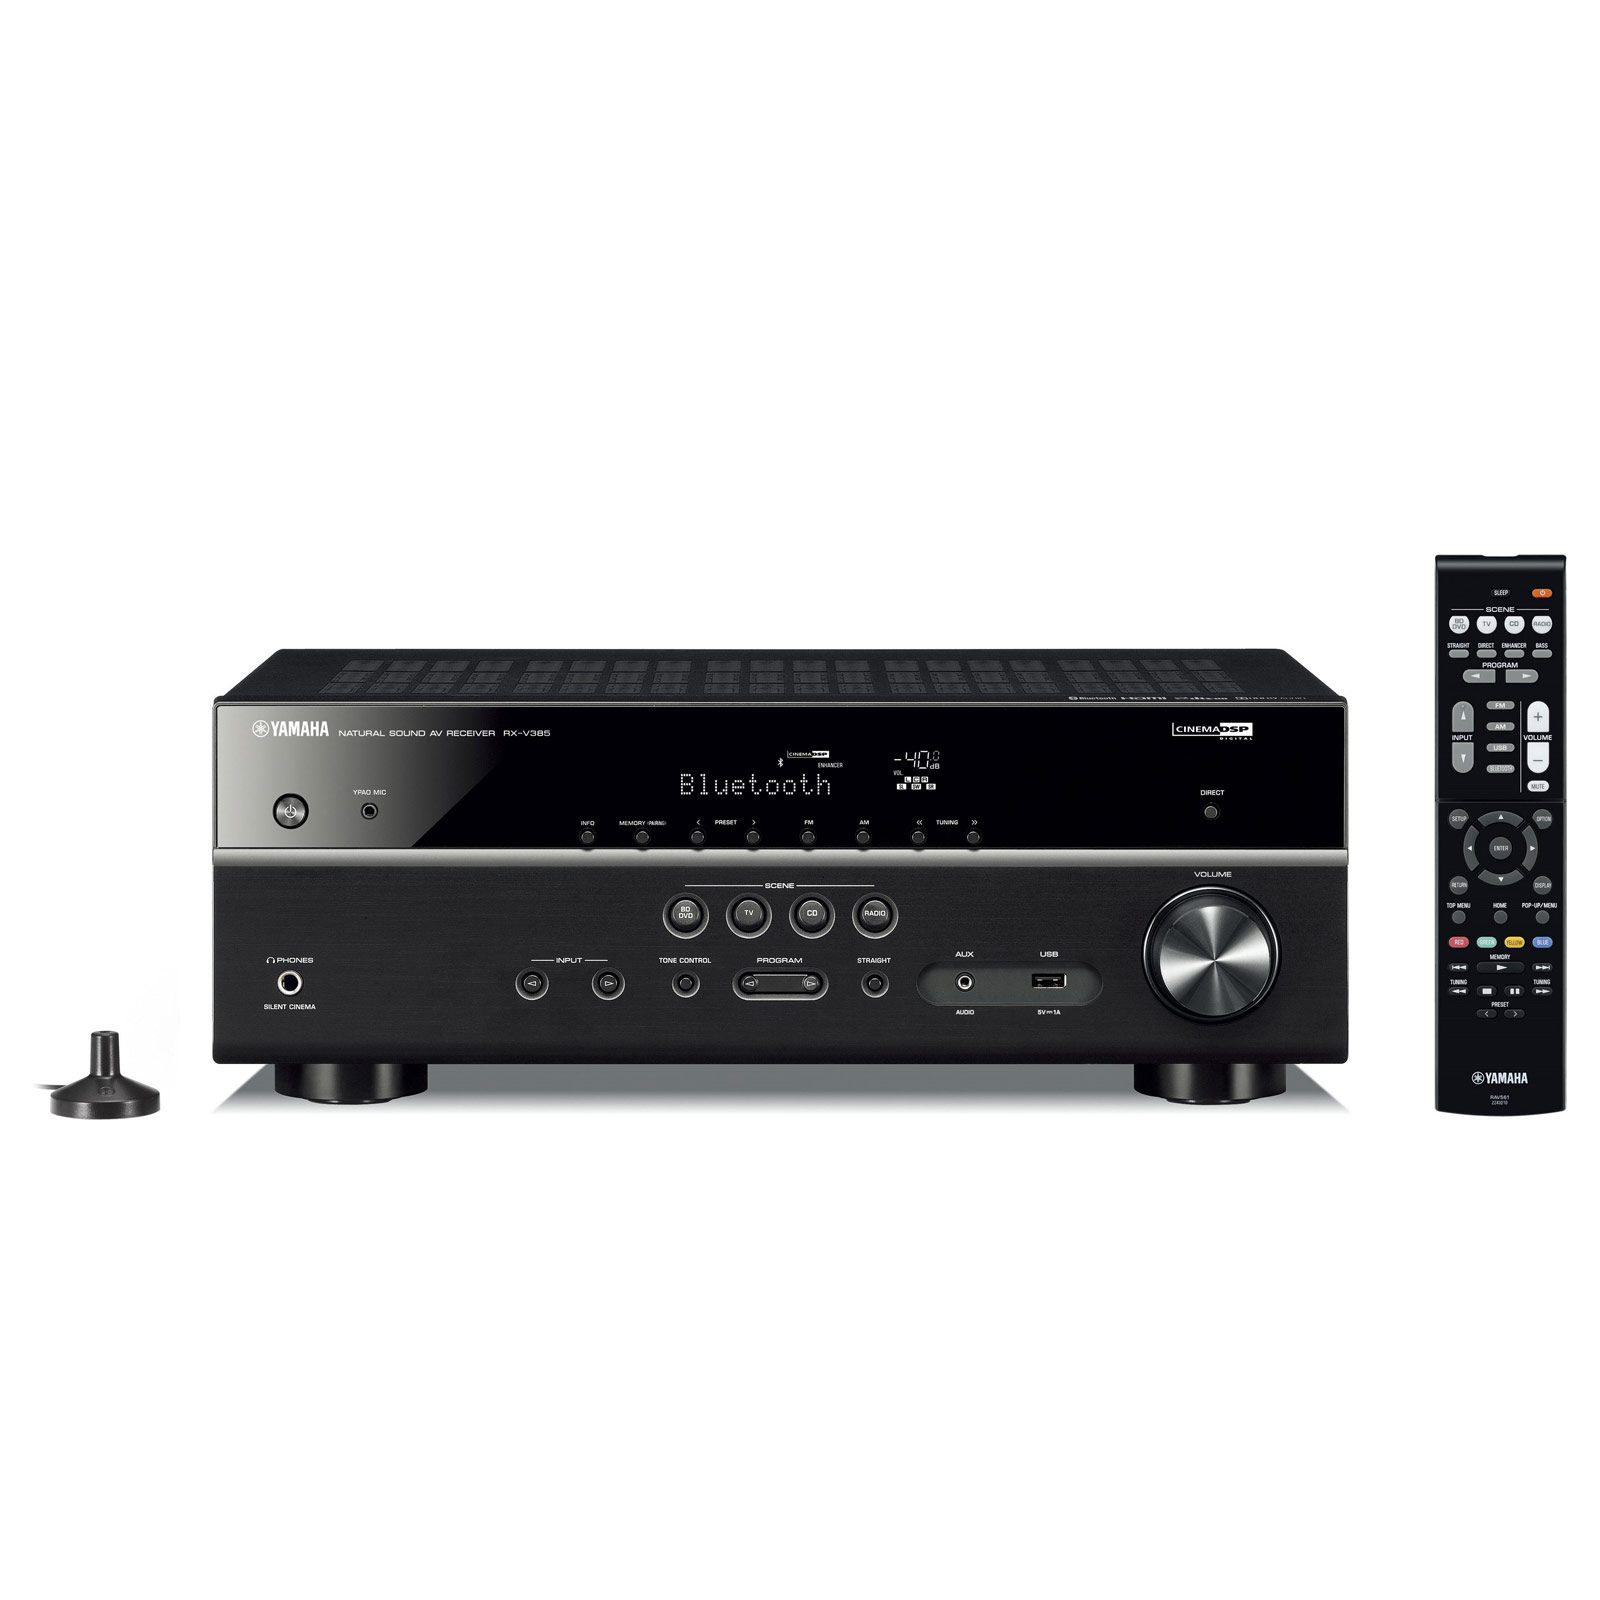 Ampli home cinéma Yamaha RX-V385 Noir Ampli-tuner Home Cinéma 5.1 3D 70 Watts/canal - Dolby TrueHD / DTS-HD Master Audio - 4 entrées HDMI 2.0 HDCP 2.2 - HDR 10/Dolby Vision/HLG - Bluetooth - Calibration YPAO